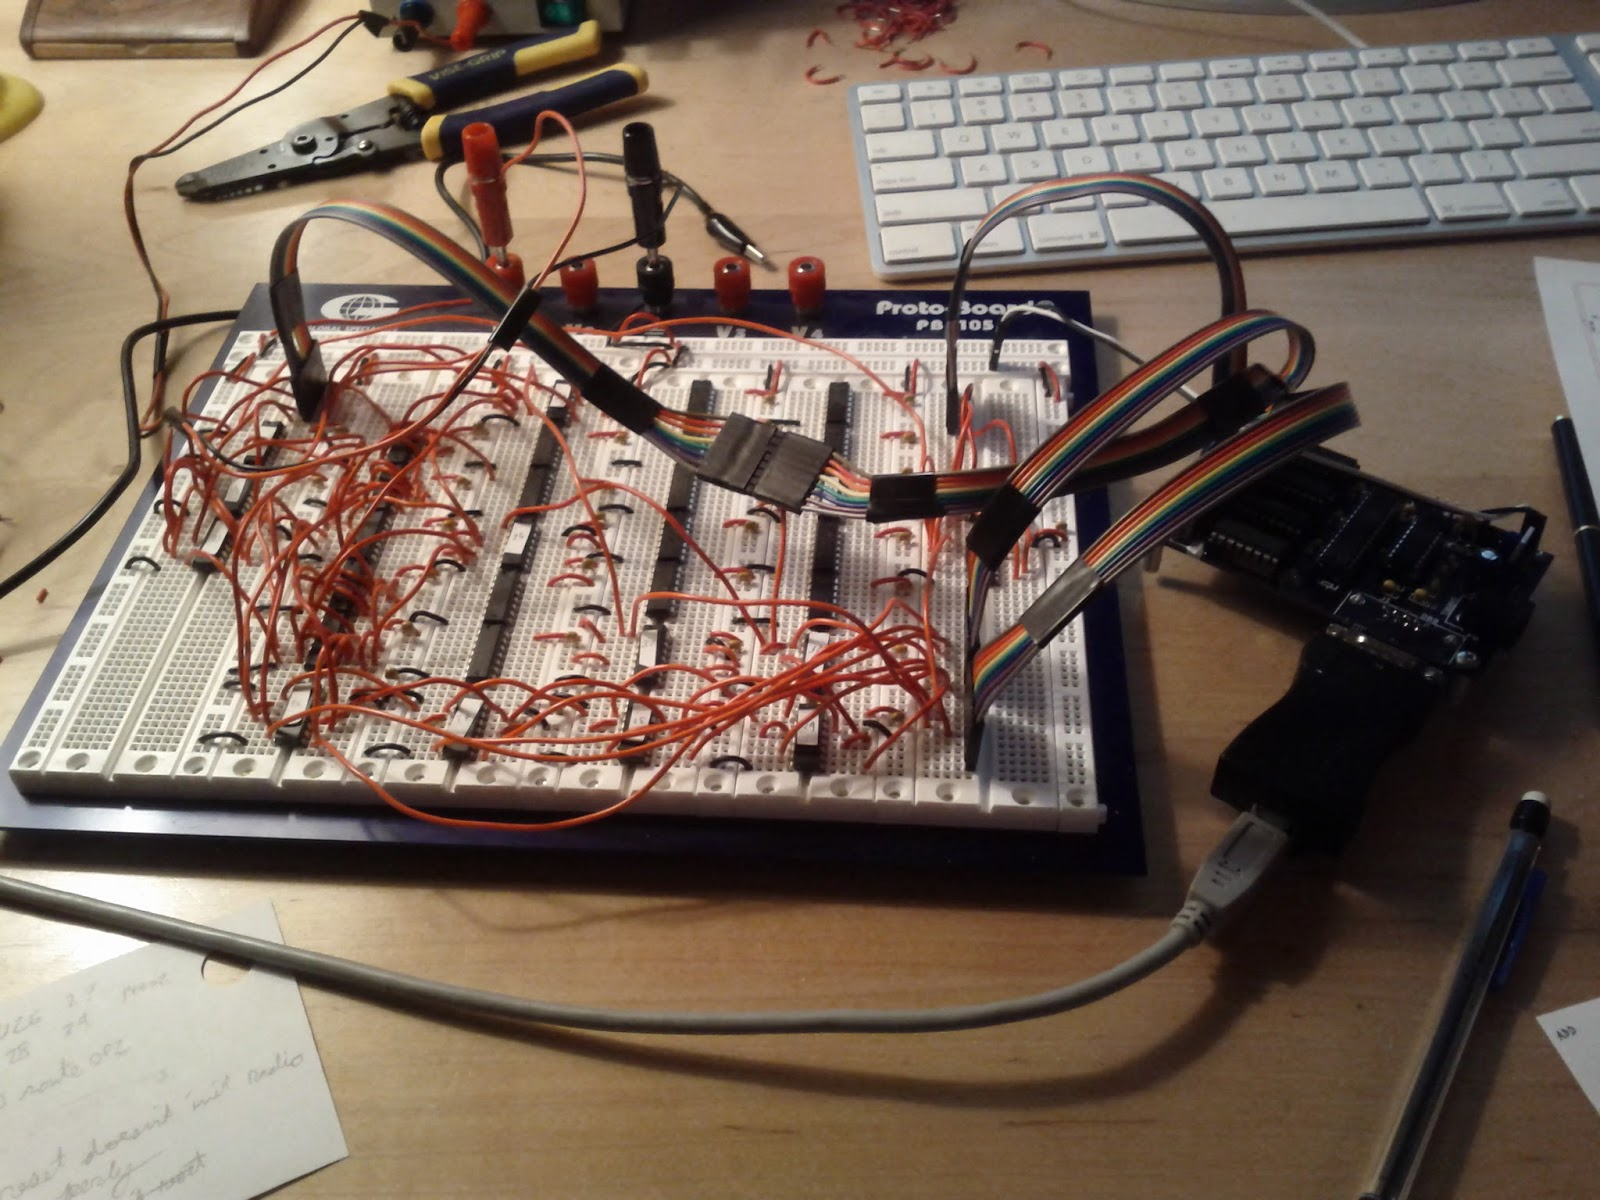 Blog 2011 Programmer Avr Your Usb Circuit Diagram Nonstopfree Electronic Ill Post Schematics And Diagrams When I Get All Eight Bits Done